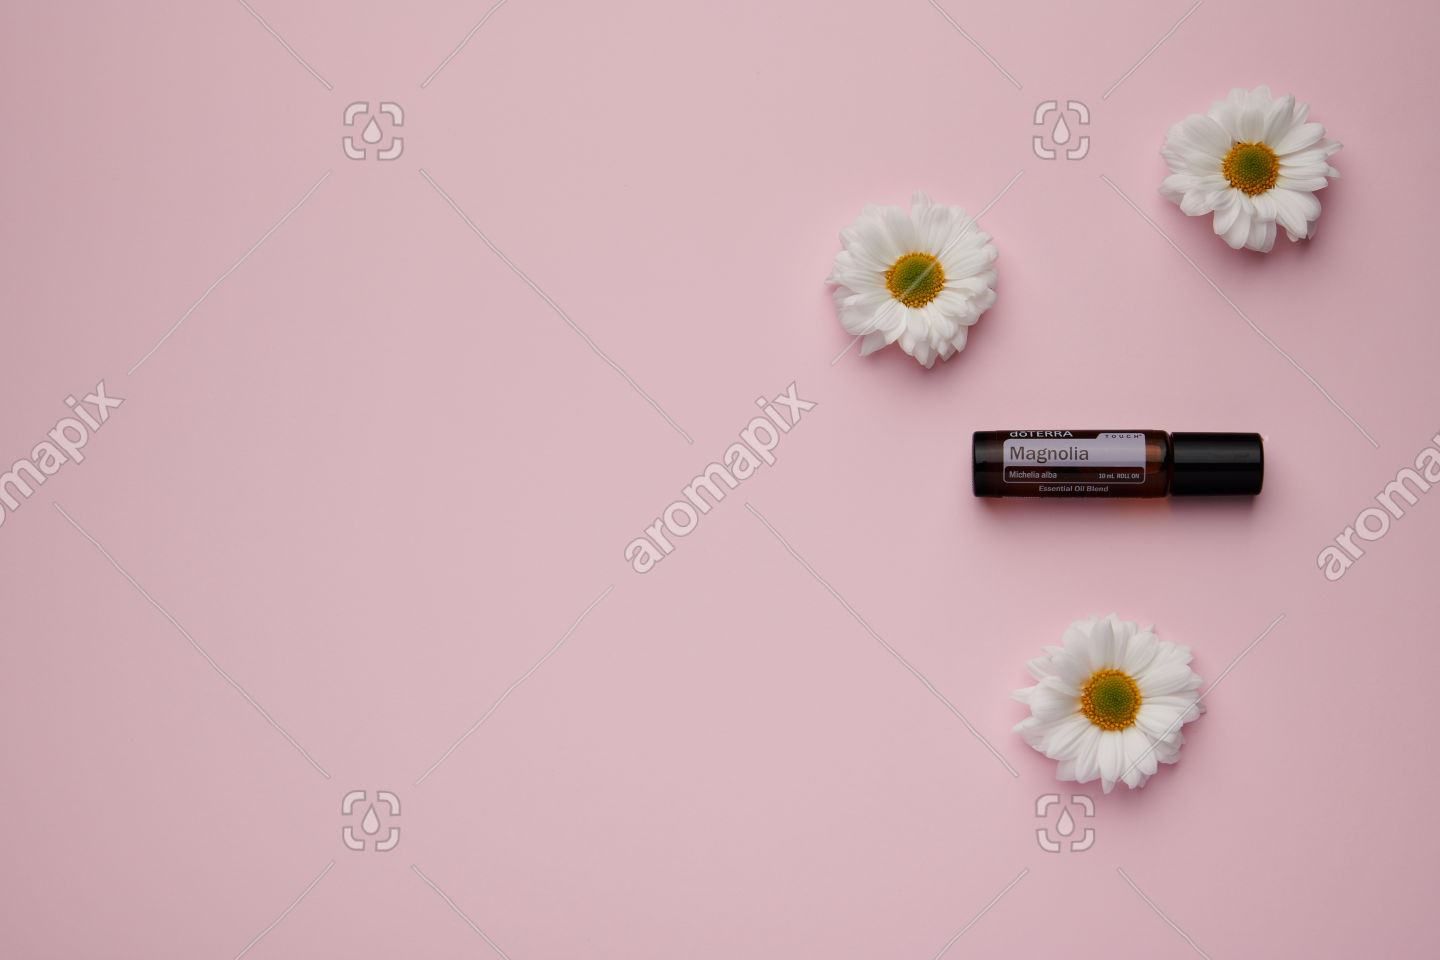 doTERRA Magnolia Touch with flowers on pink